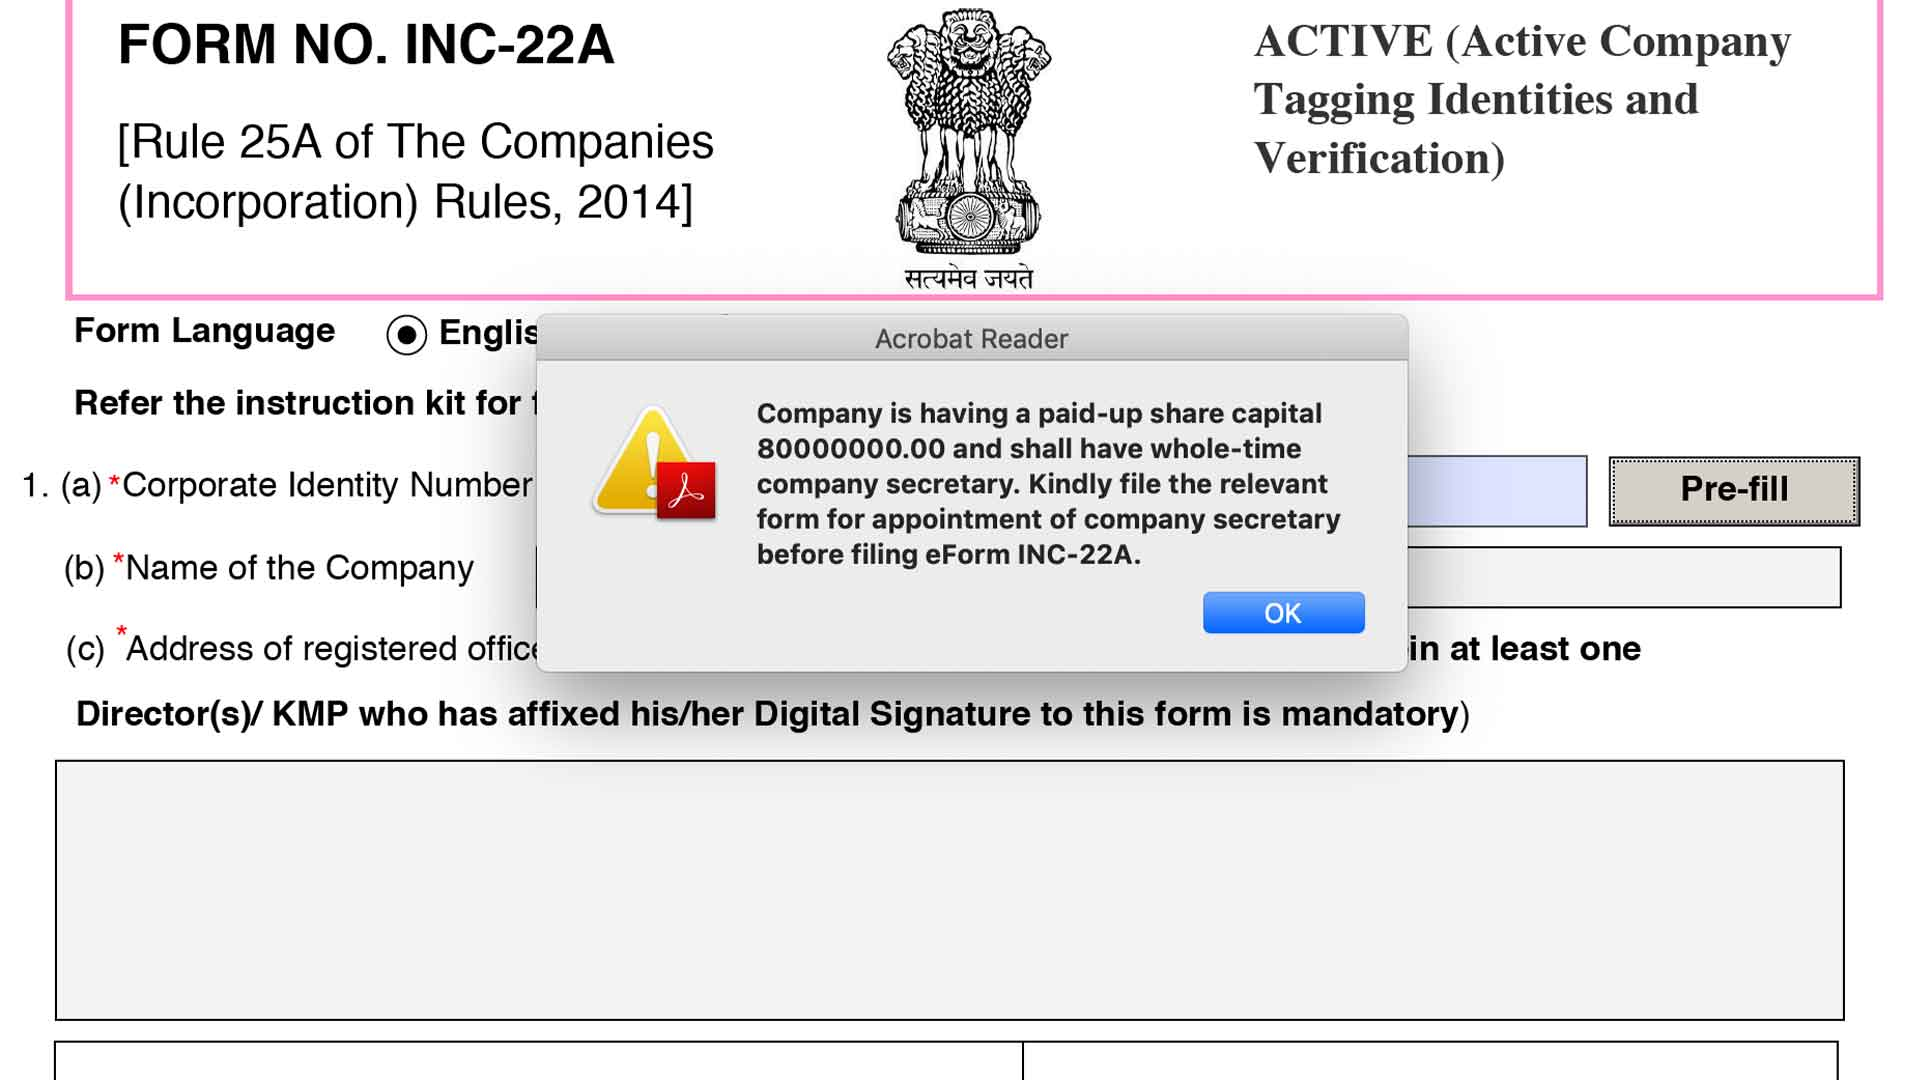 From 22-A filing & Appointment of Company Secretary